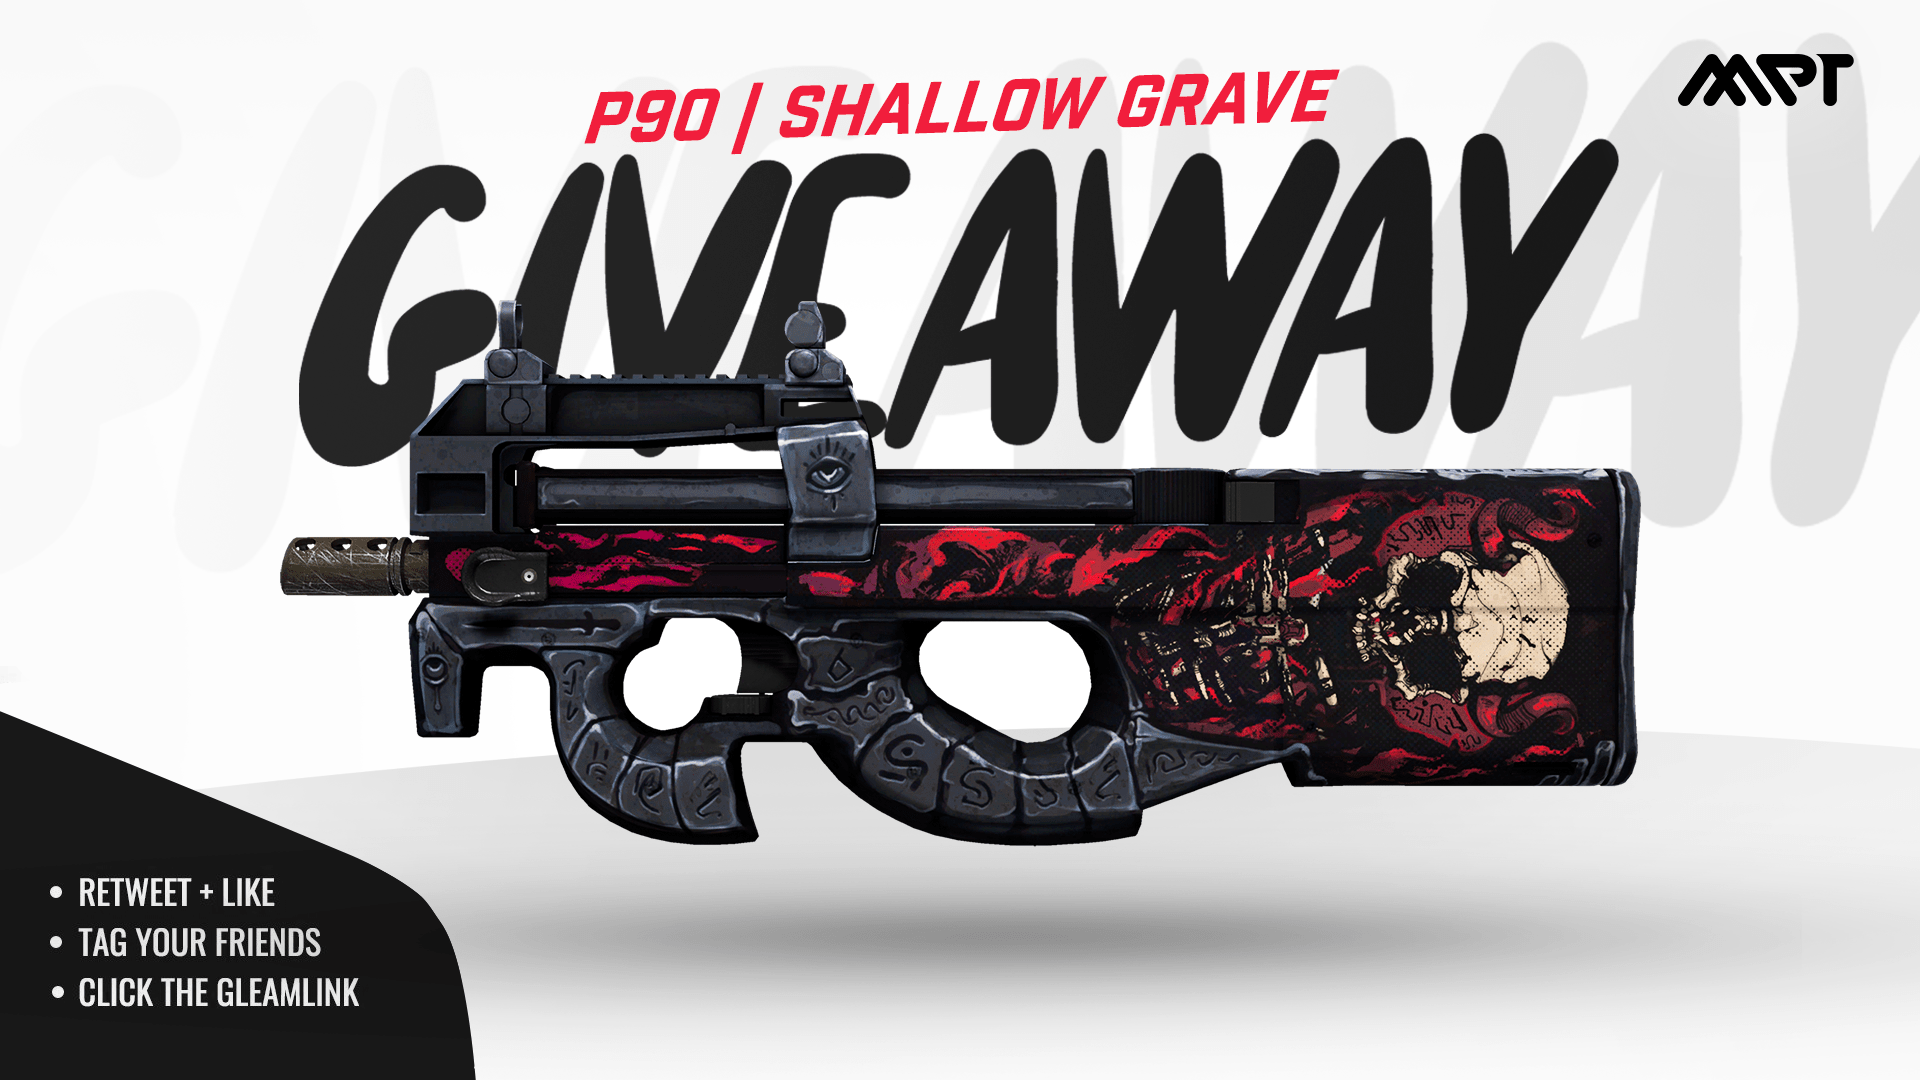 Factory New | P90 | Shallow Grave . Giveaway